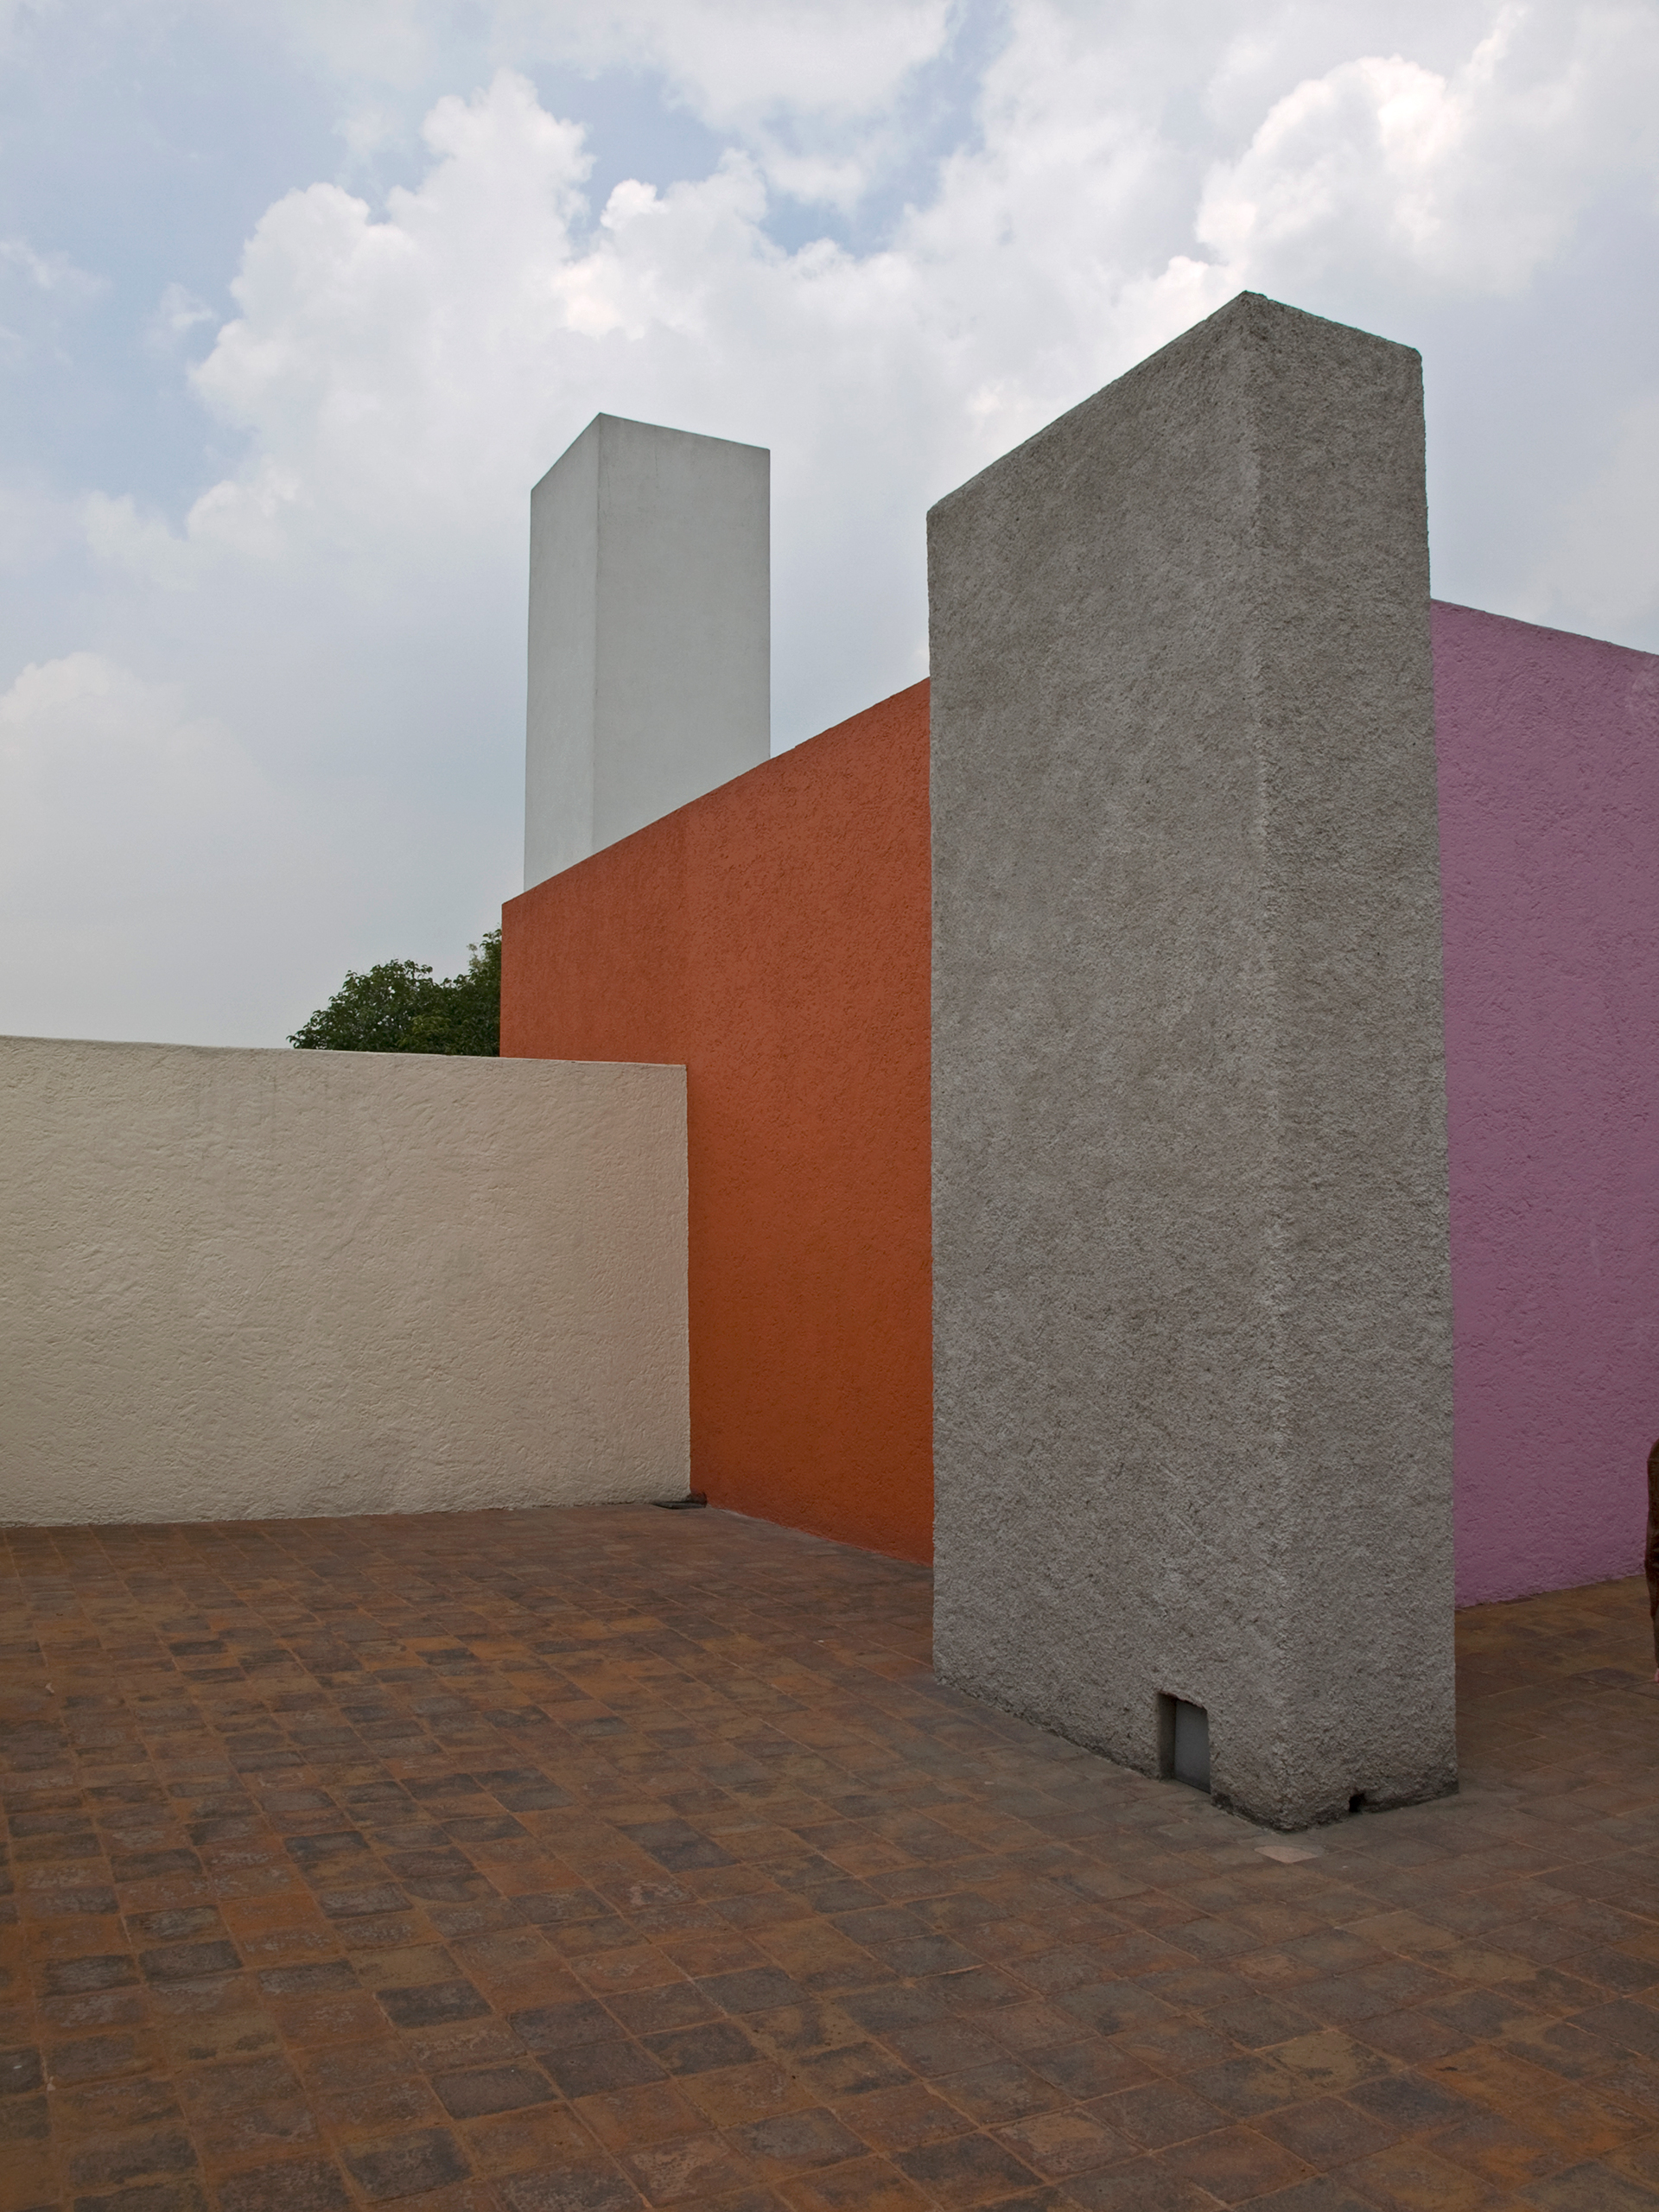 The roof patio of Casa Barragán | Luis Barragán | STIRworld